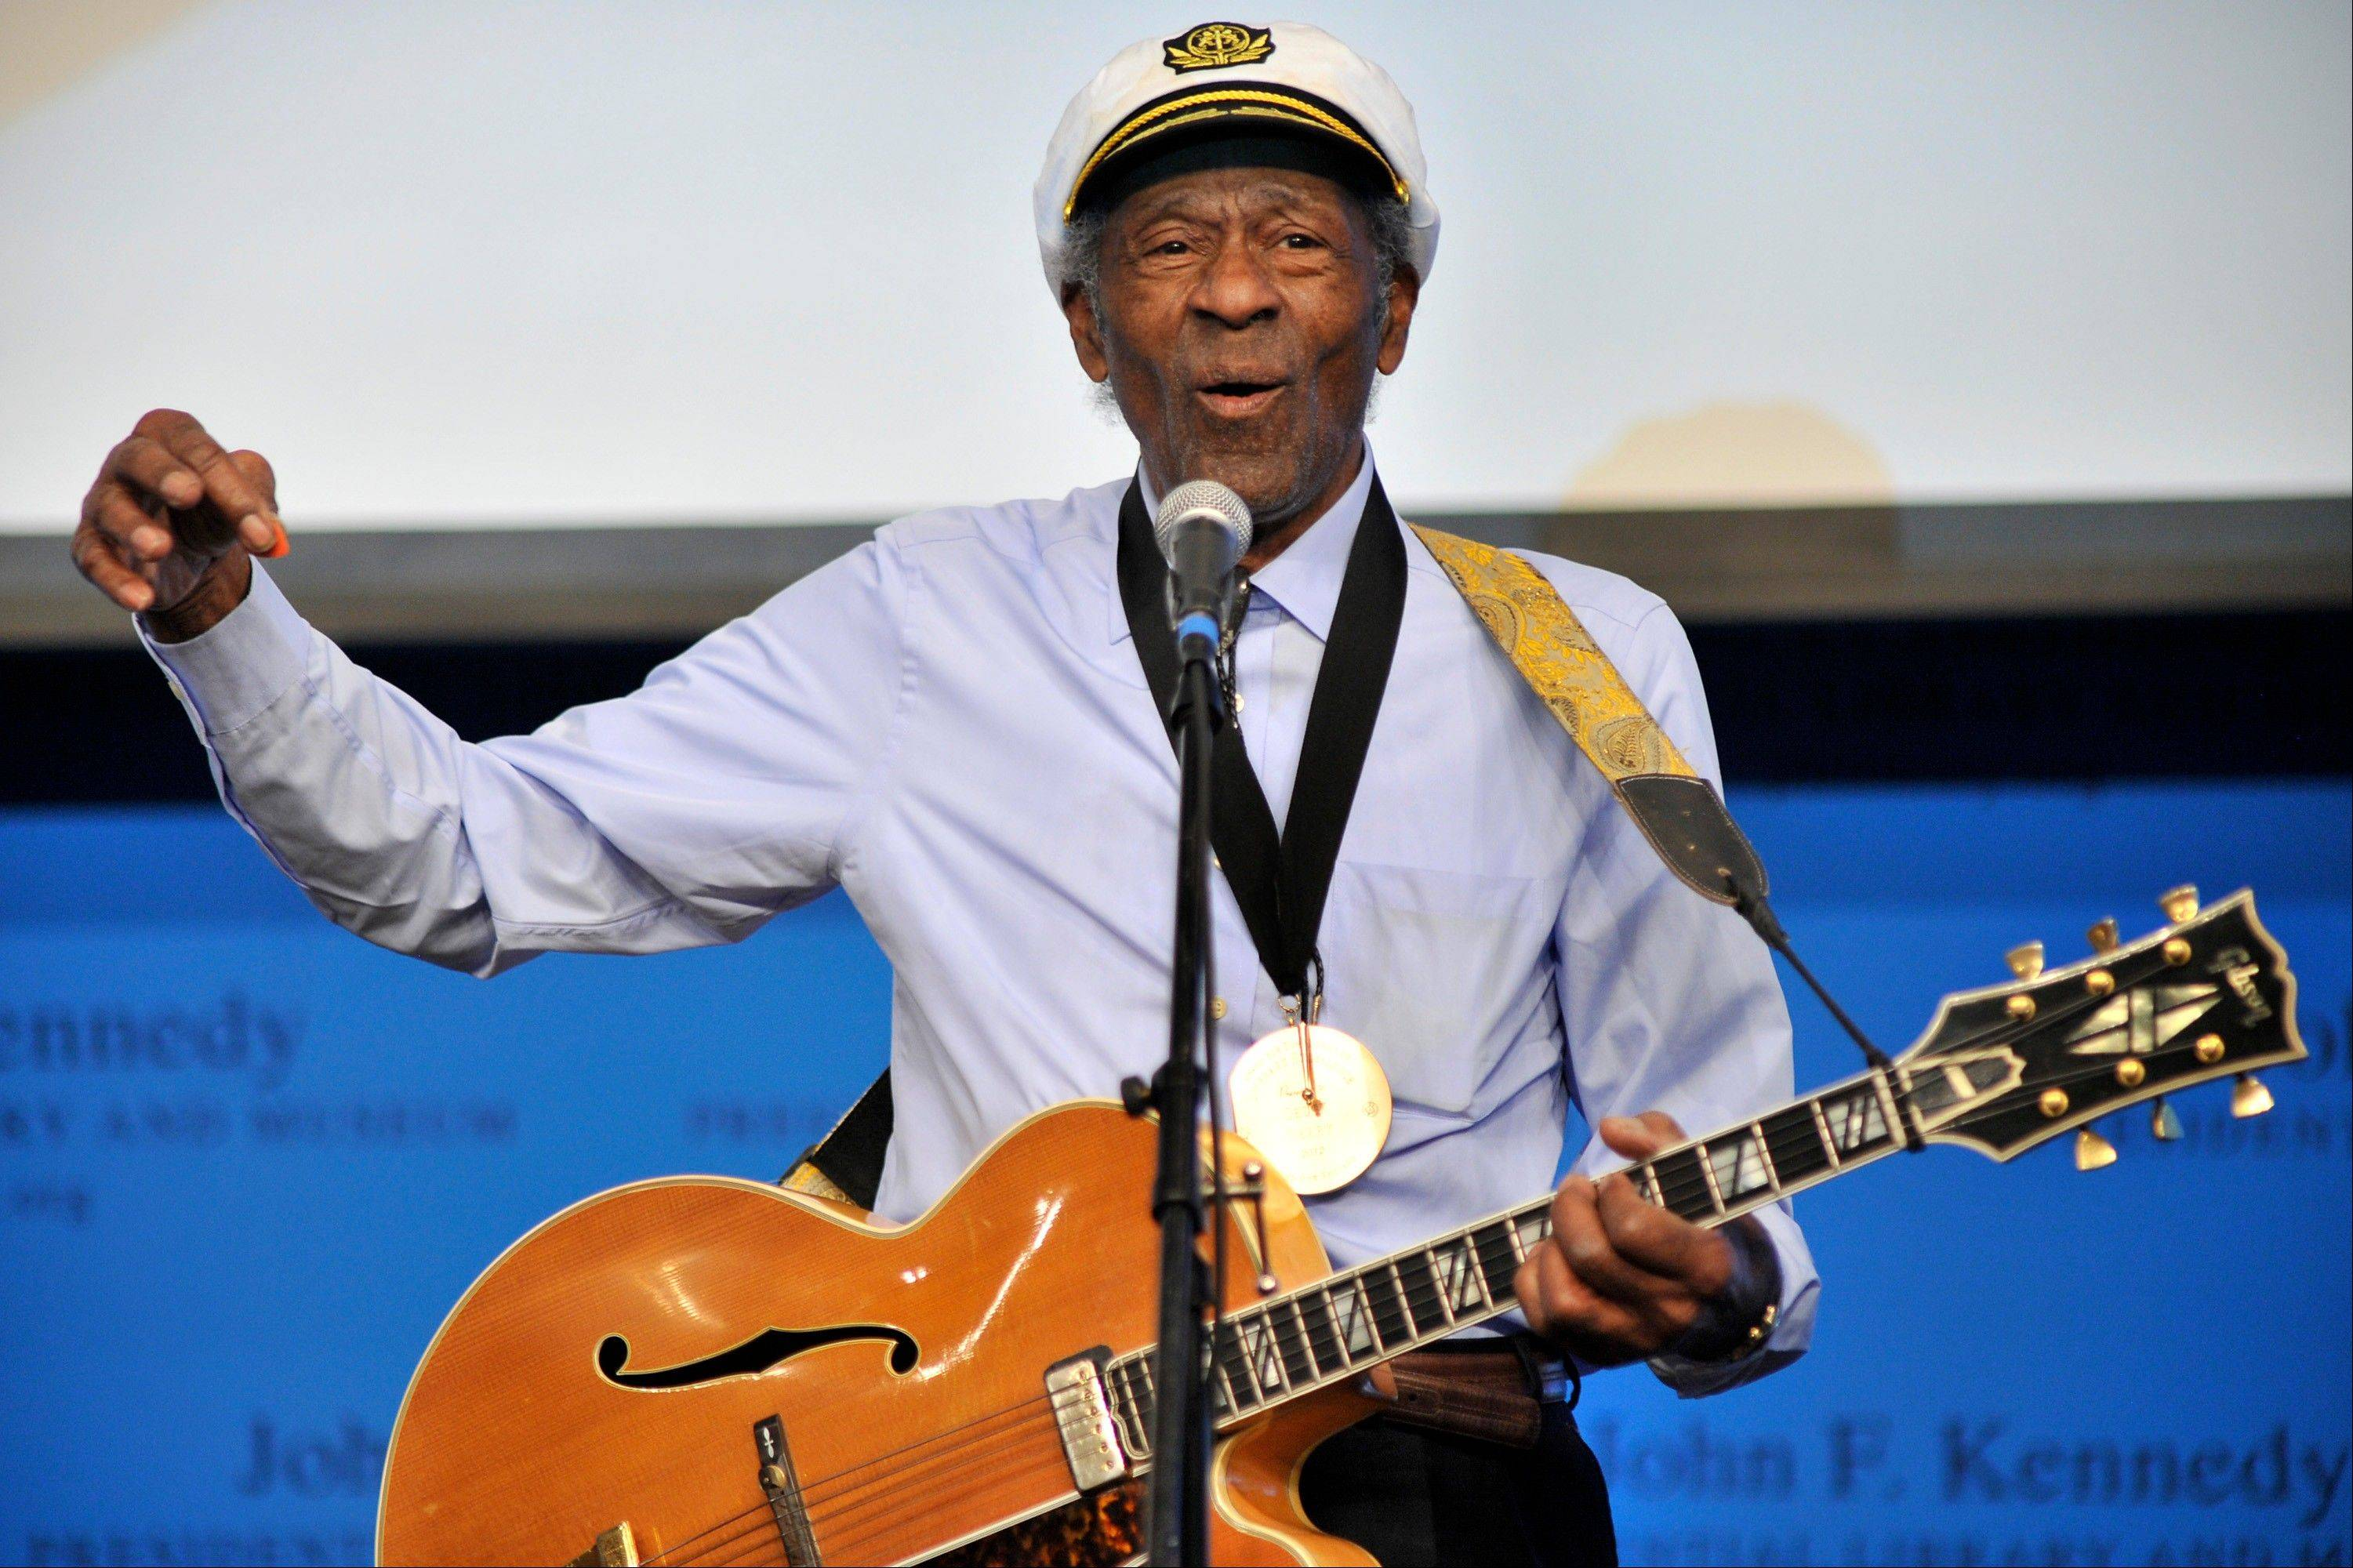 Musician Chuck Berry will be honored this fall by the Rock and Roll Hall of Fame as part of its American Music Masters series.